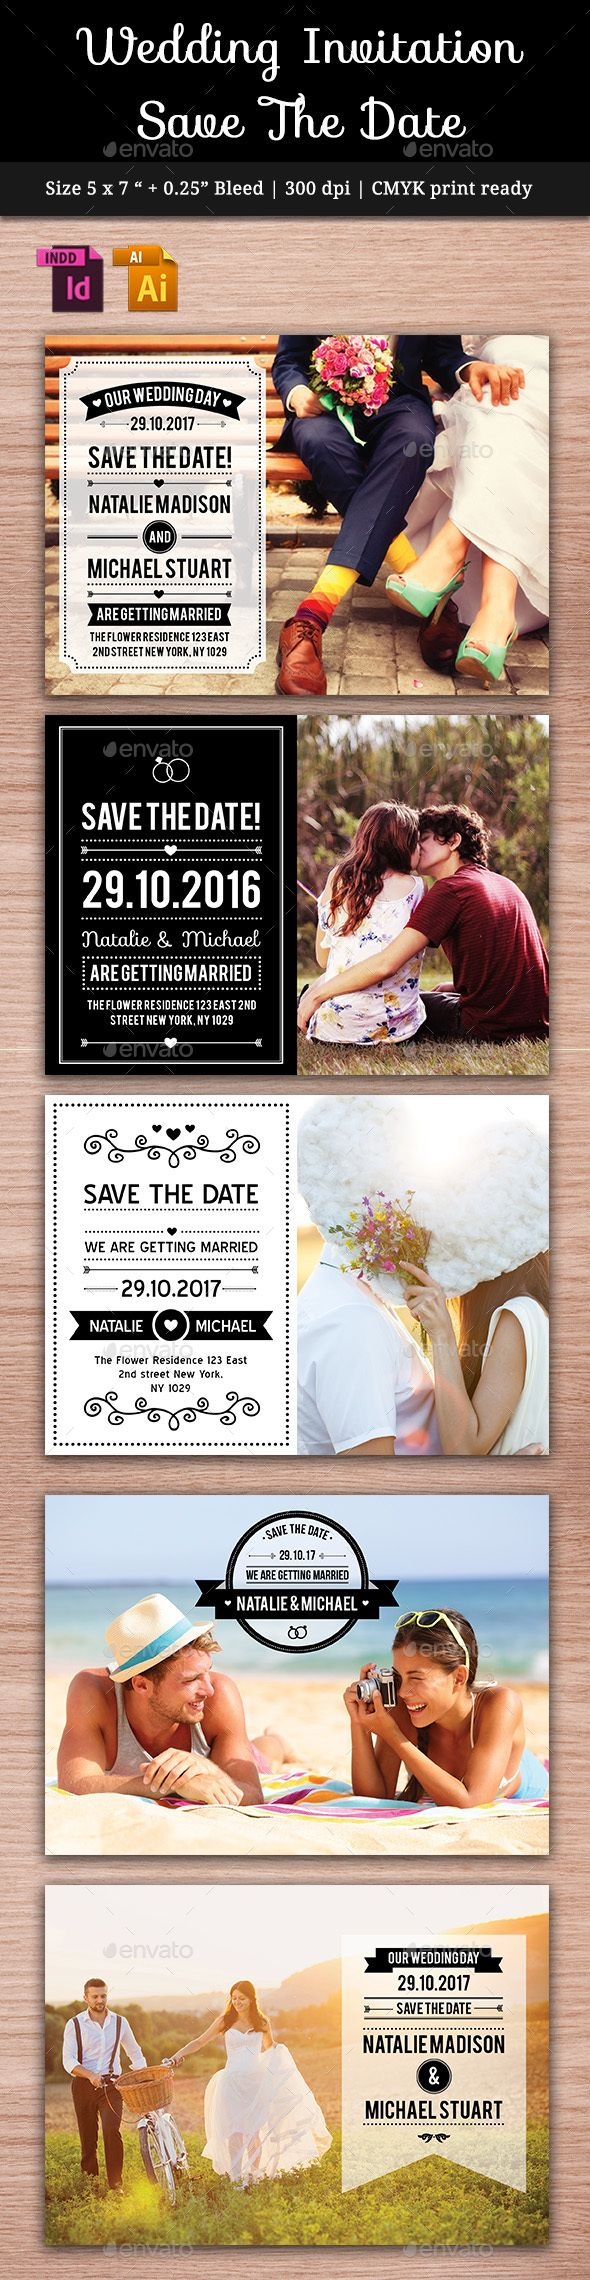 wedding invitation template themeforest%0A facility manager cover letter